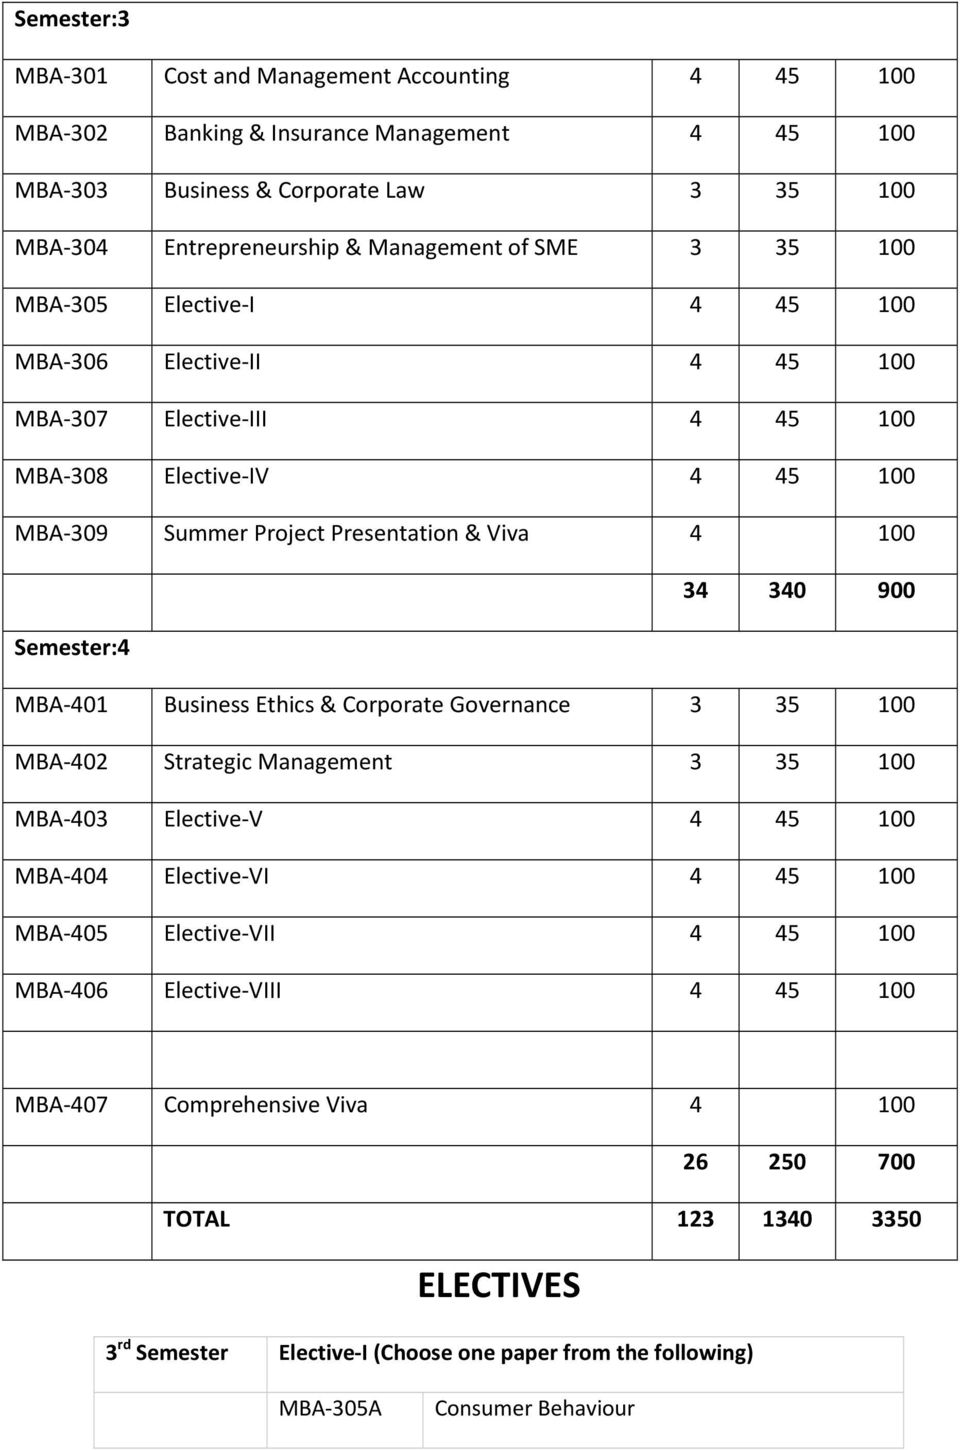 Semester:4 MBA 401 Business Ethics & Corporate Governance 3 35 100 MBA 402 Strategic Management 3 35 100 MBA 403 Elective V 4 45 100 MBA 404 Elective VI 4 45 100 MBA 405 Elective VII 4 45 100